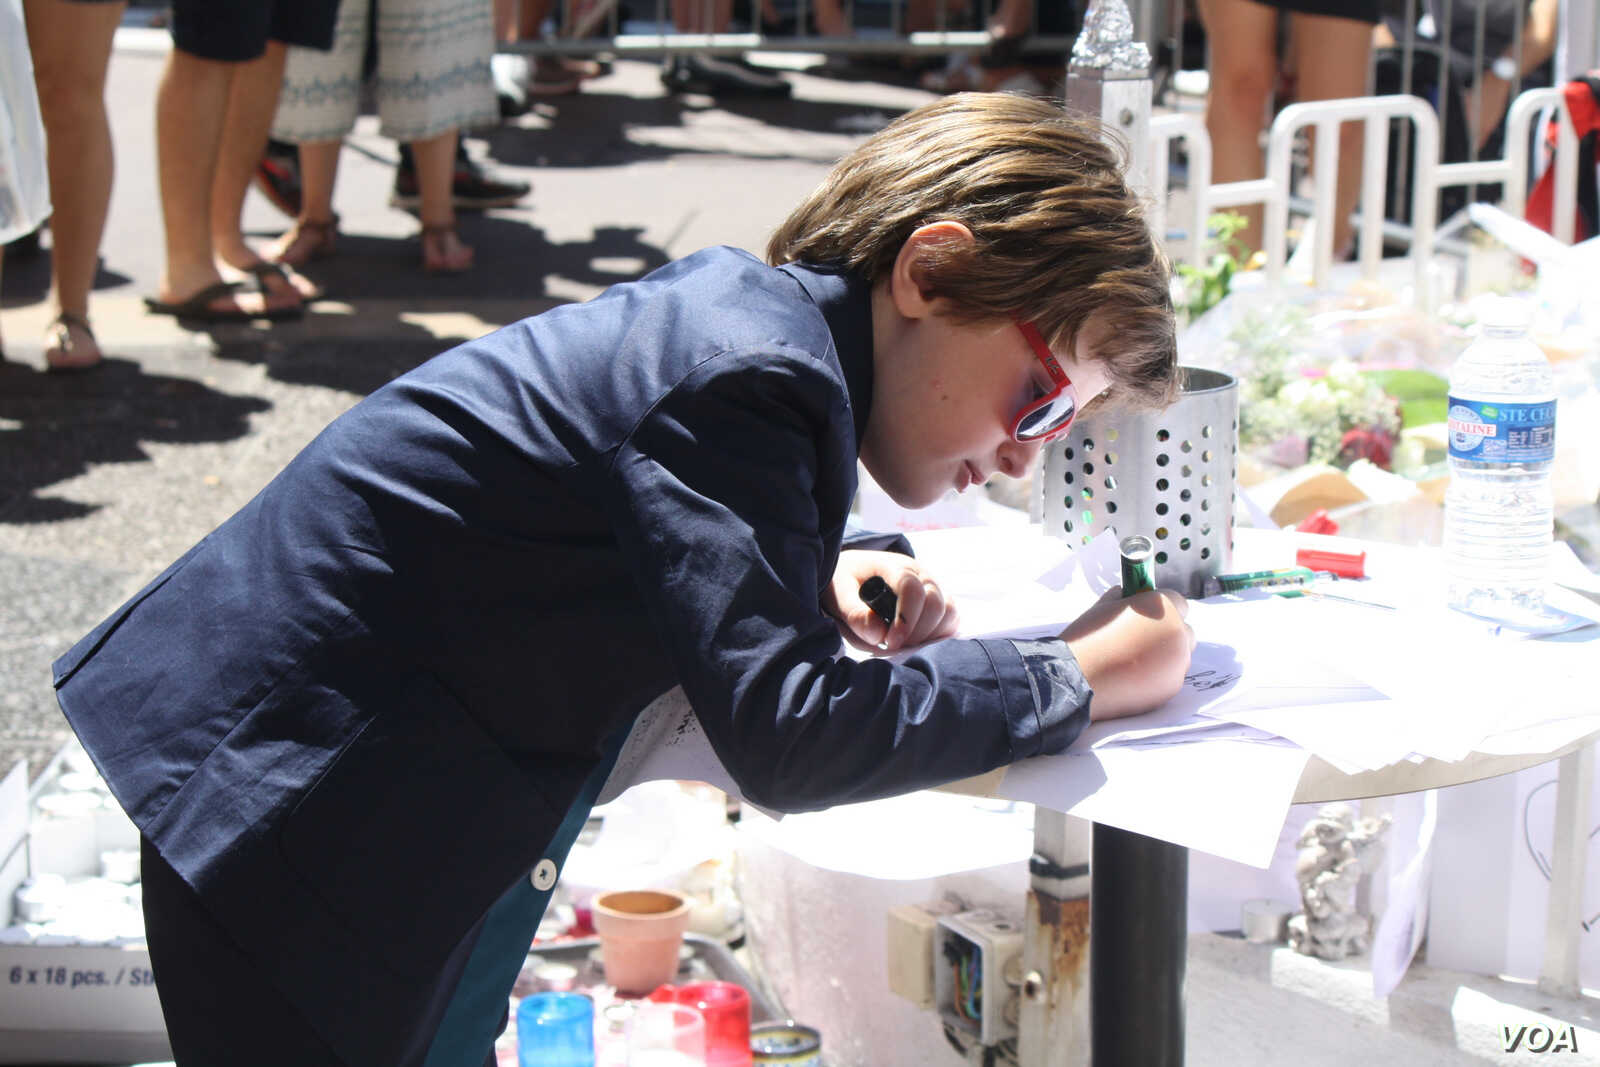 A boy writes a note of solidarity for the victims of Thursday's attack that killed 84 people and wounded over 200 in Nice, France, July 16, 2016. (H.Murdock/VOA)